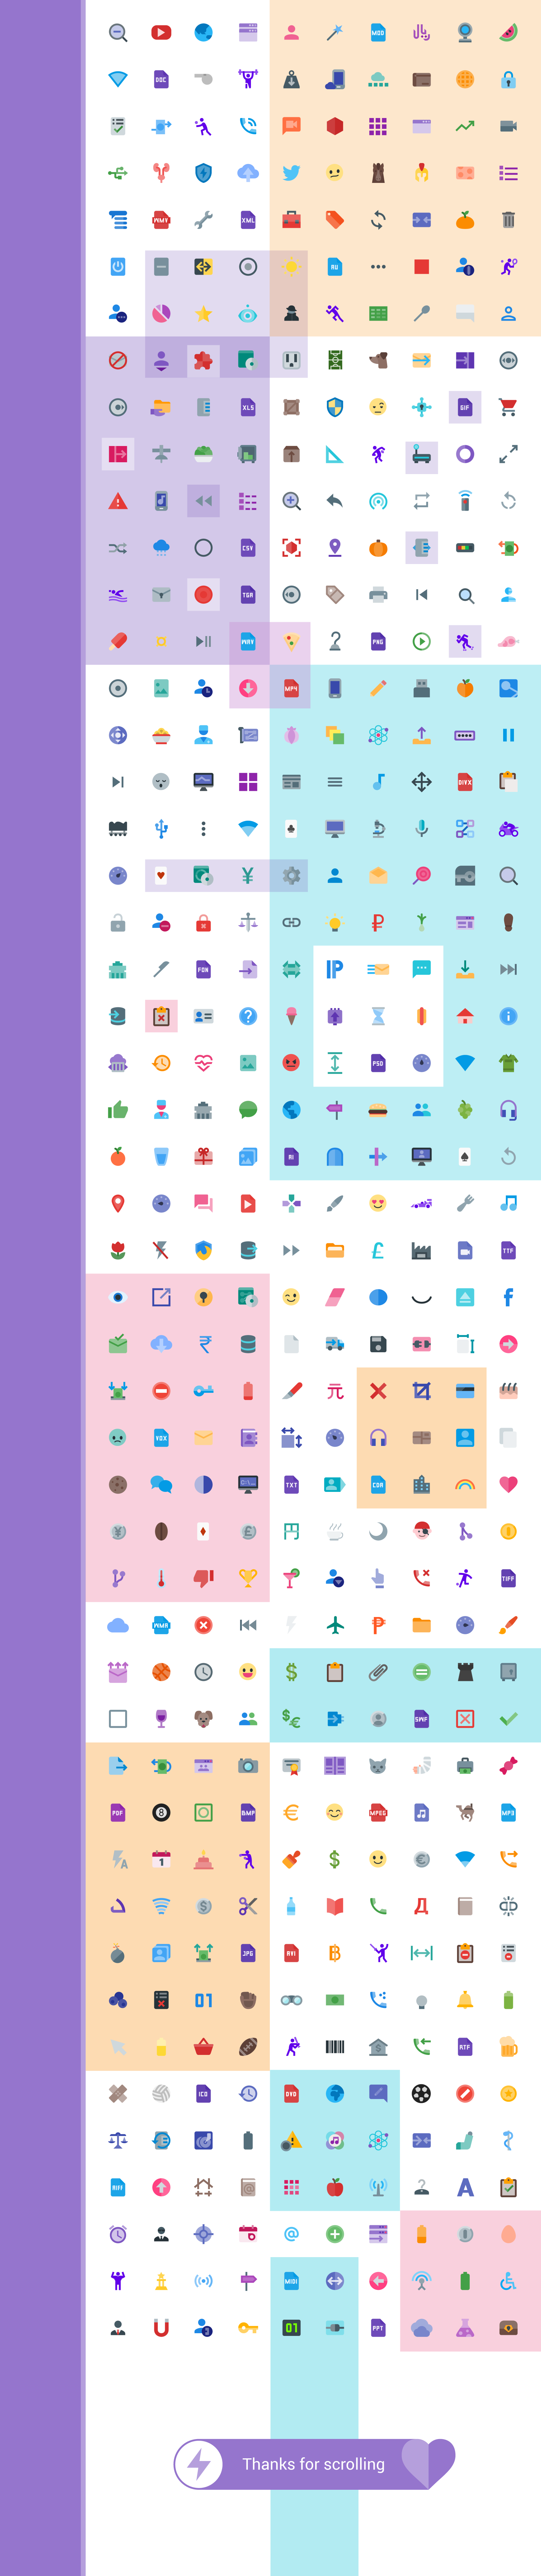 material_free_icons_2